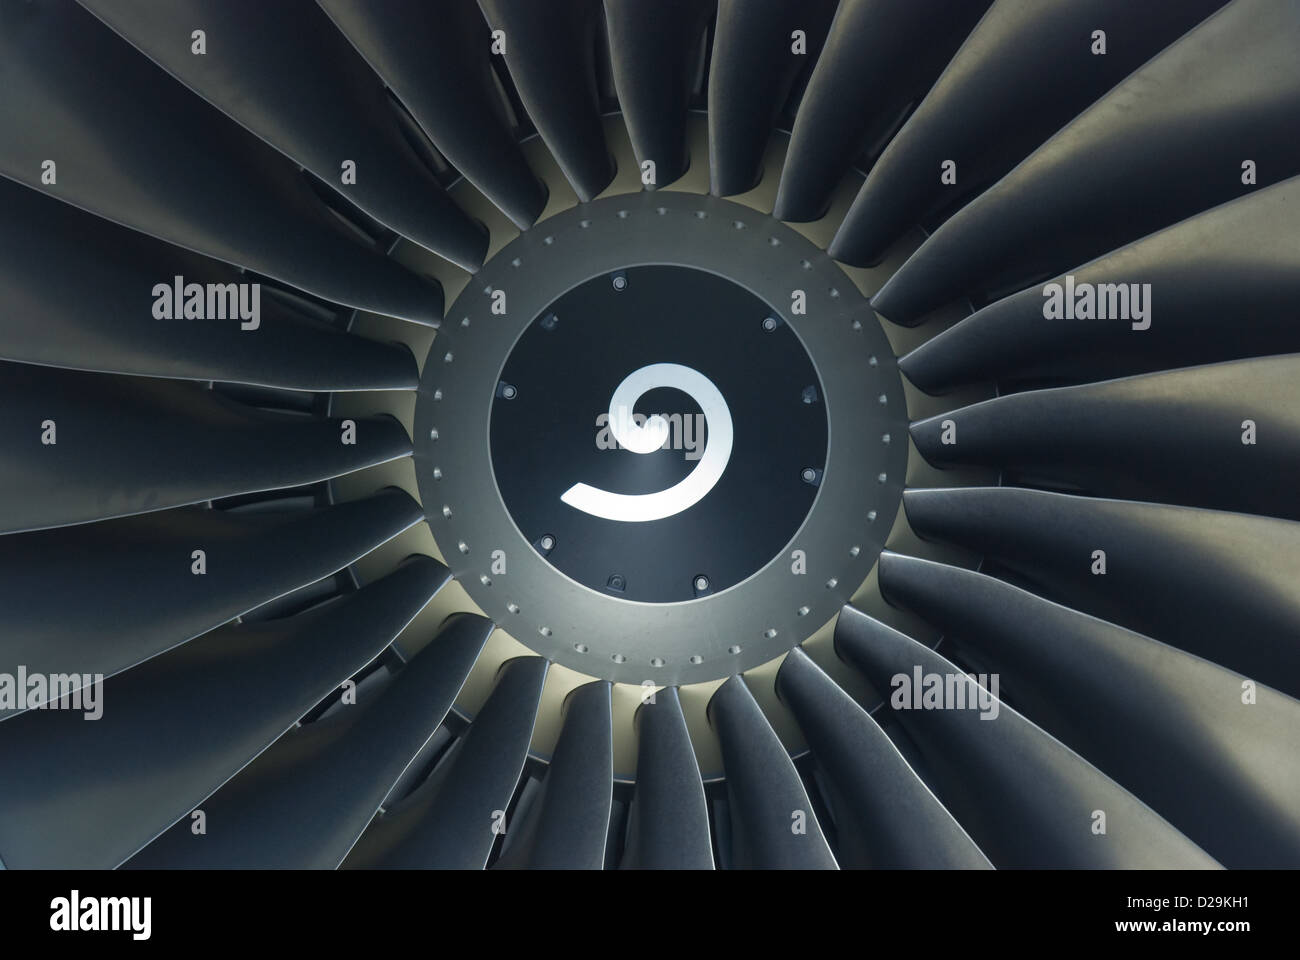 Detail of jet engine - Stock Image